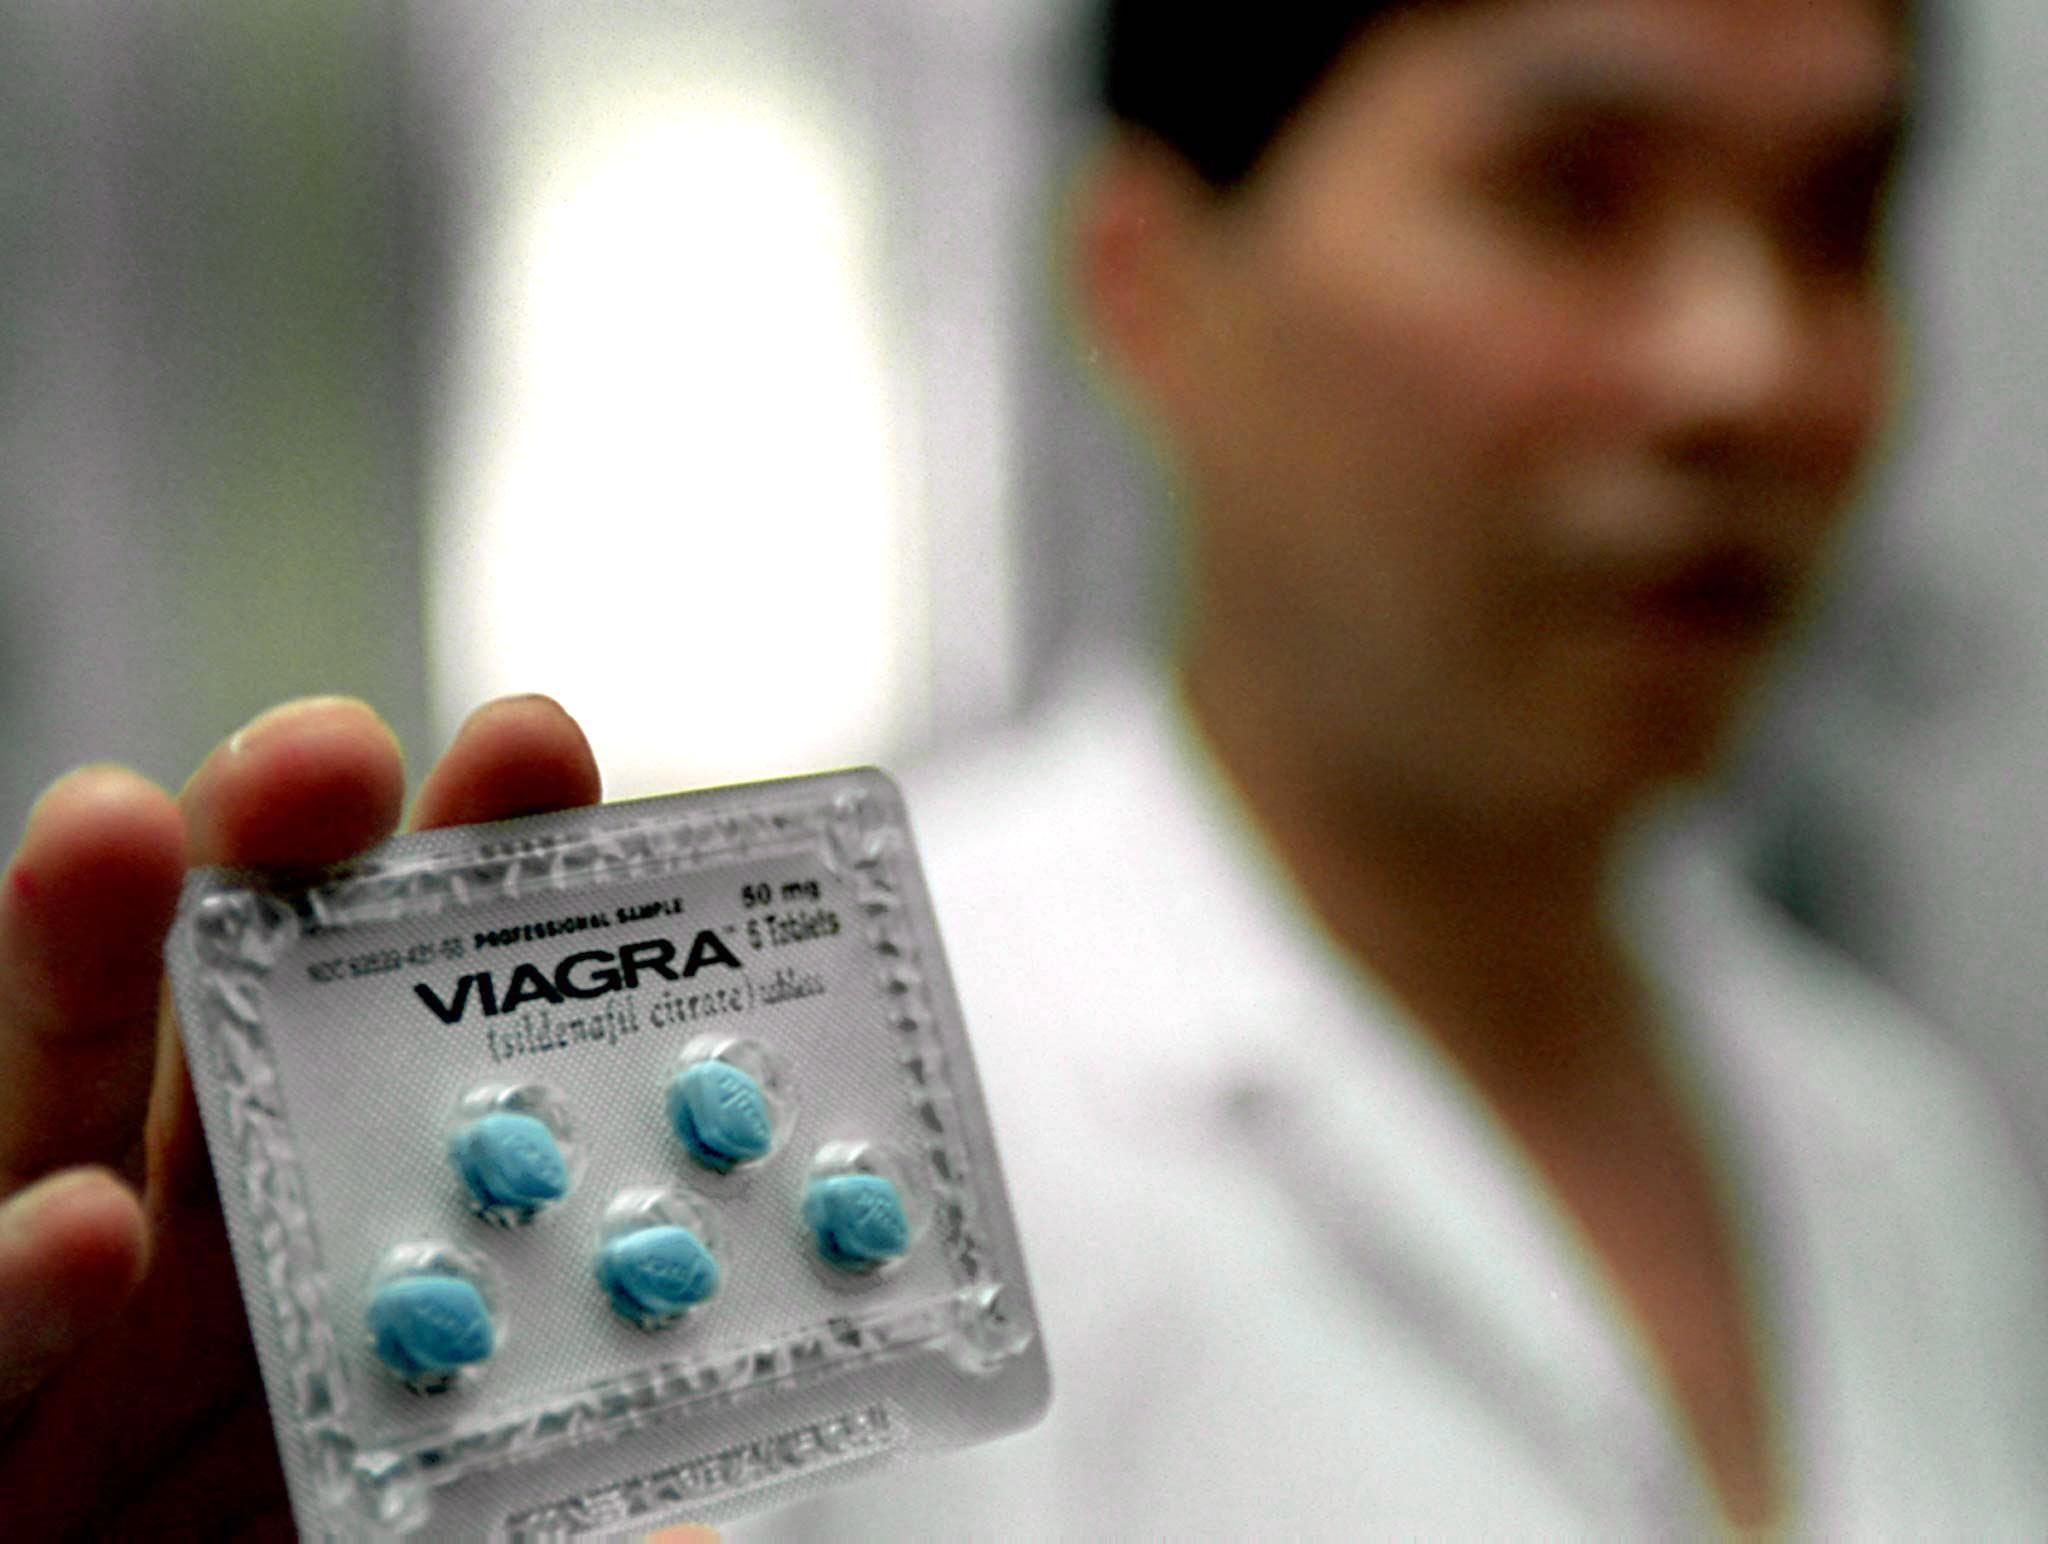 cheaper generic version of viagra will be available soon